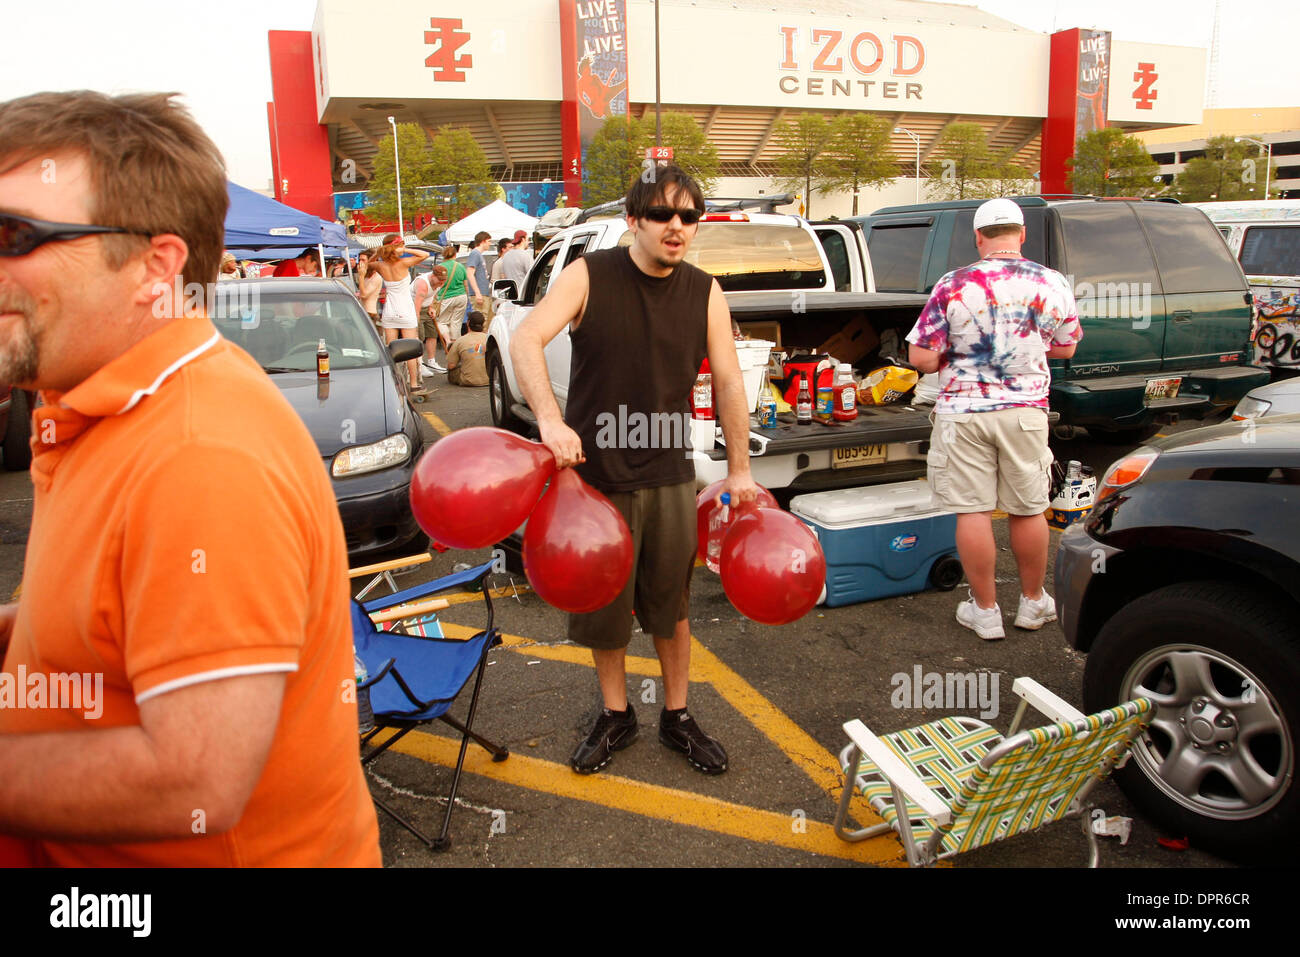 Apr 28, 2009 - E. Rutherford, New Jersey, USA - Fans and the scene at the village, the red balloons contain C02 Stock Photo